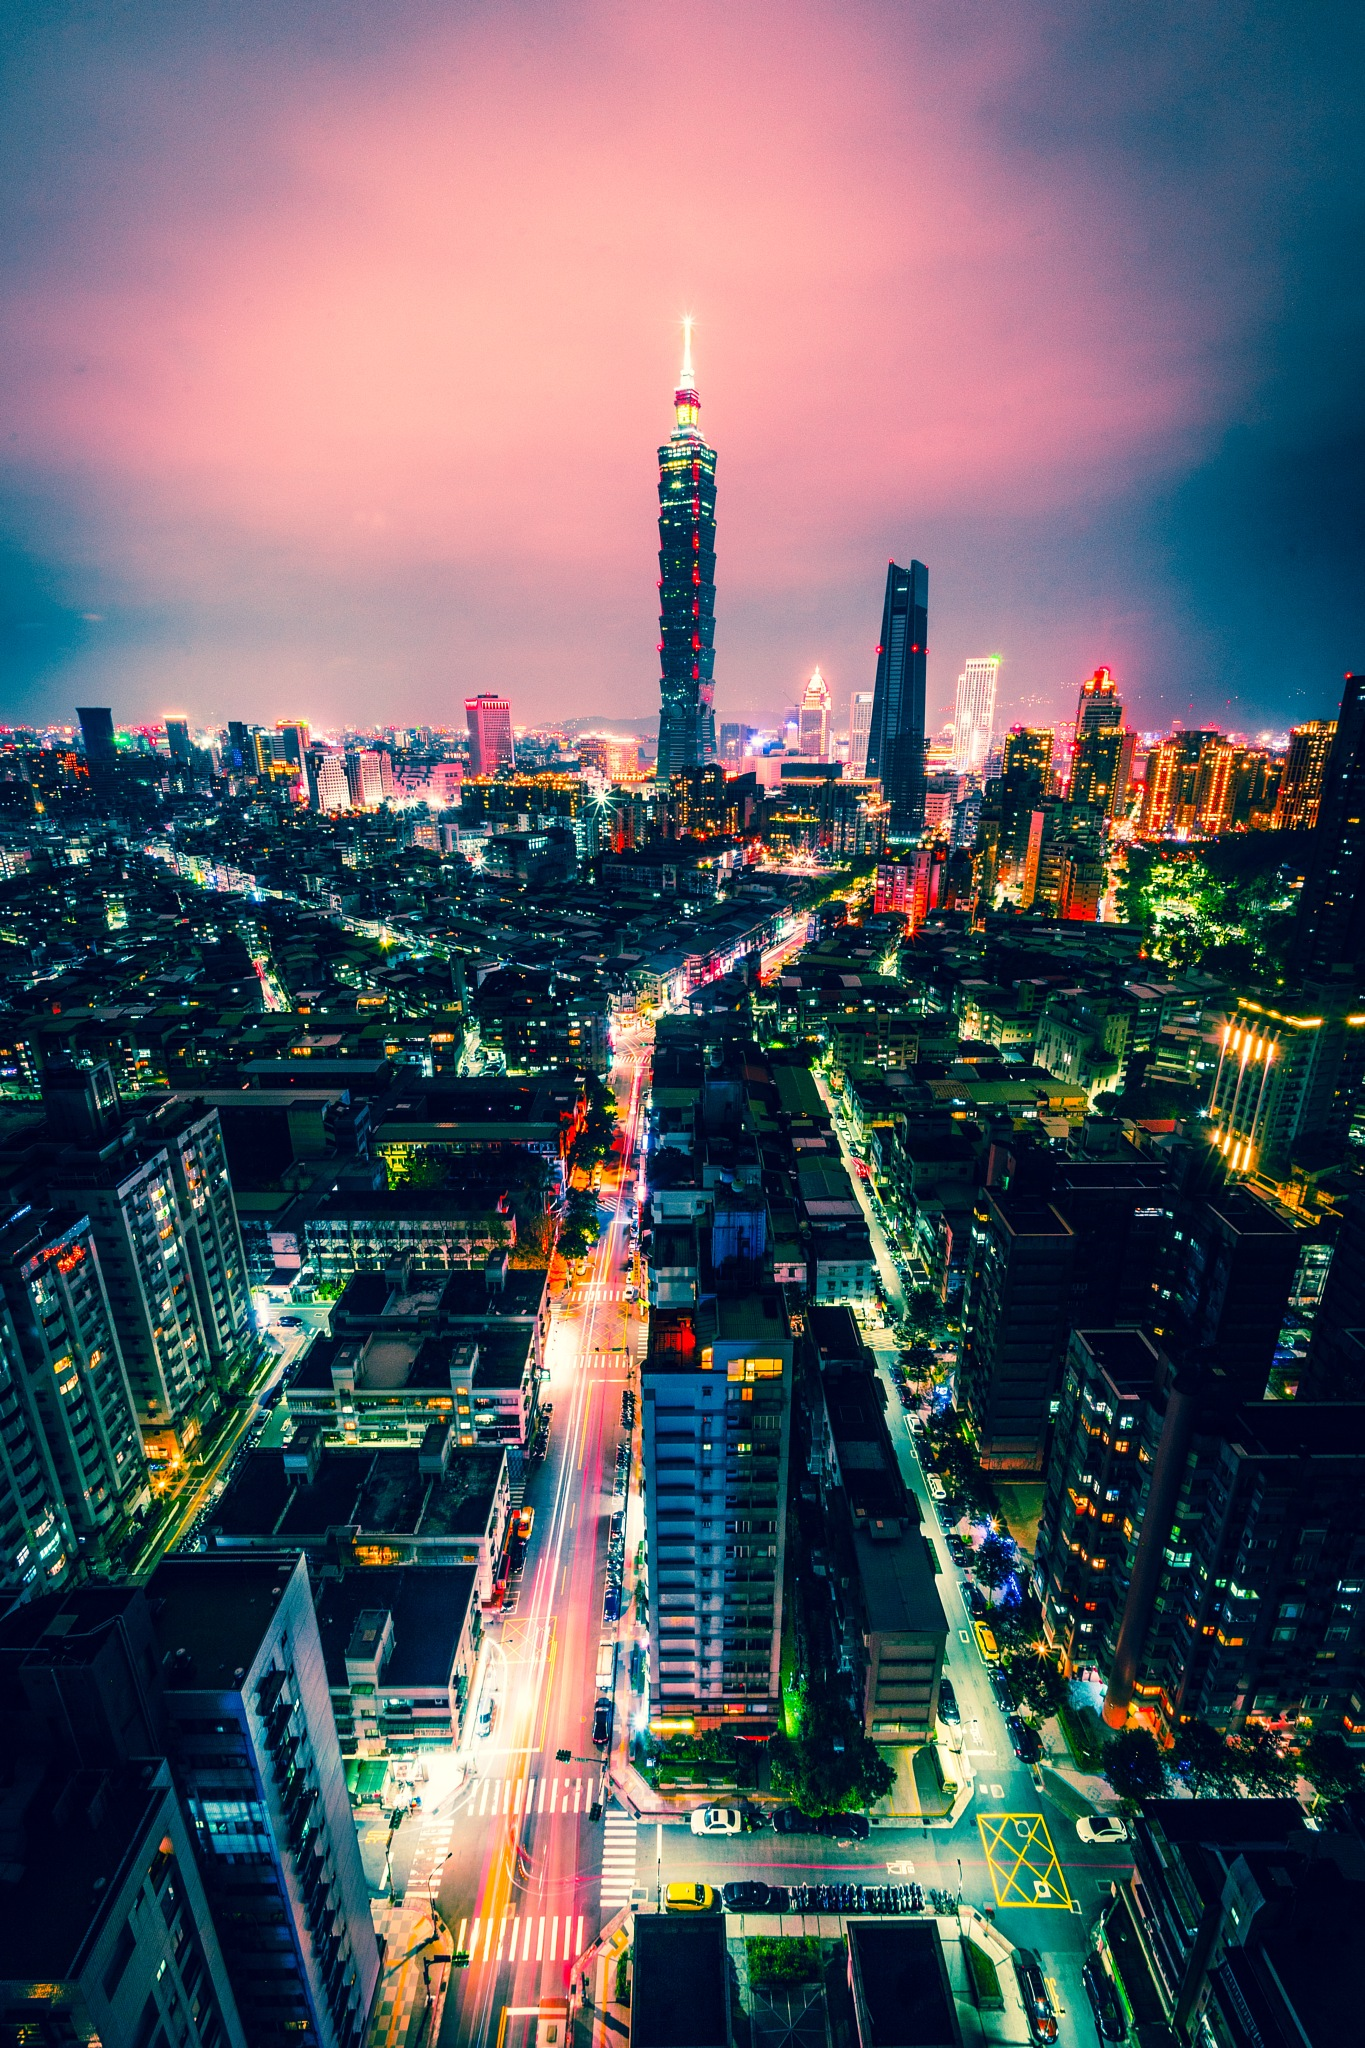 Whats your color of Taipei by Albert Chang